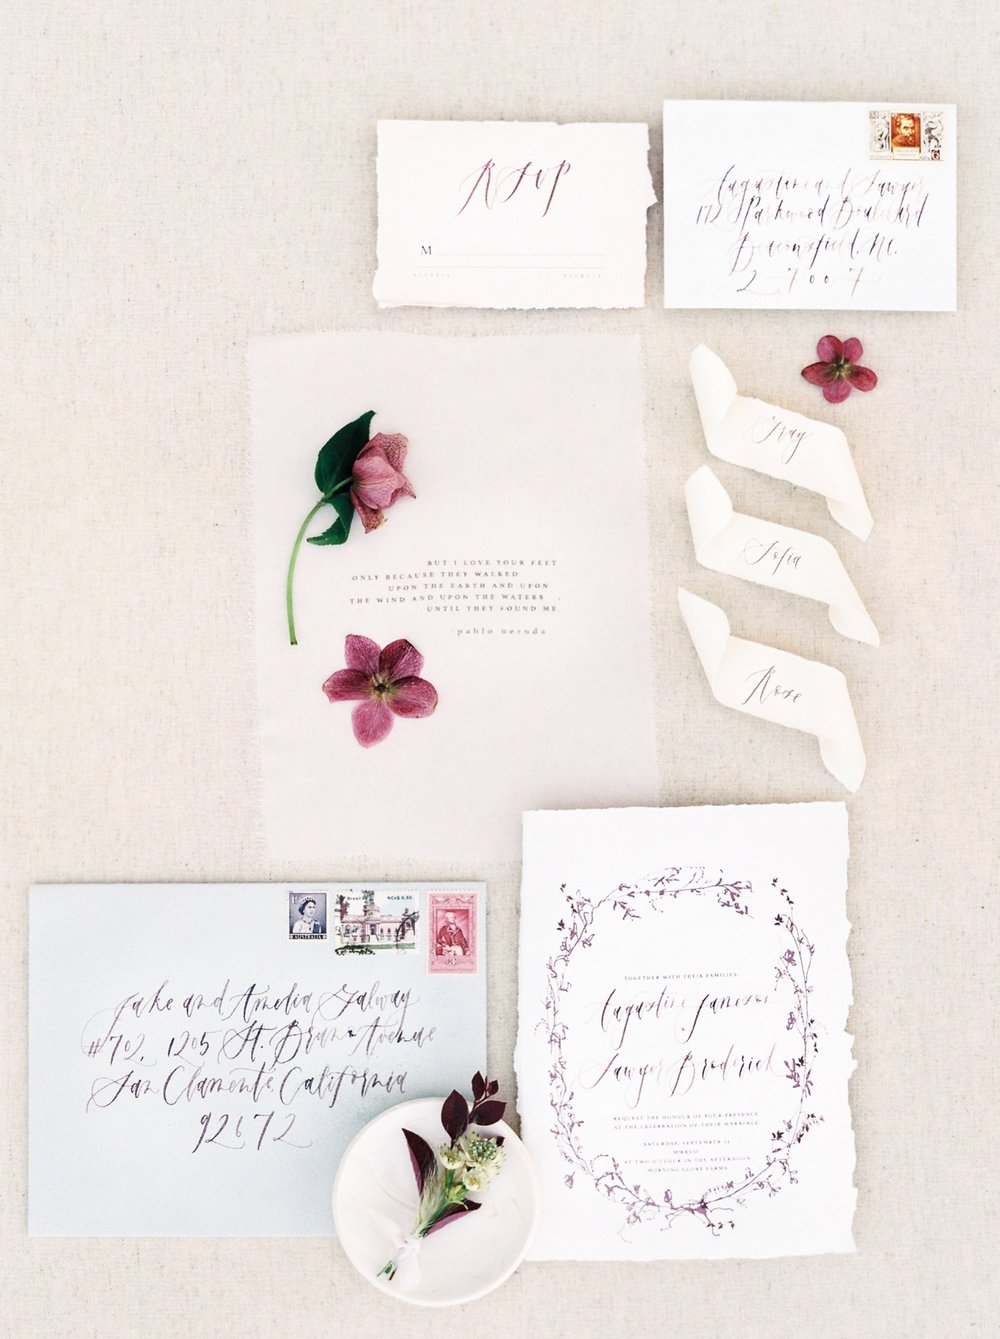 Julianne Young Weddings | Charlotte wedding photographer | wedding invitations | fine art film | Charlotte photographer | Justine Milton Photography | wedding inspiration